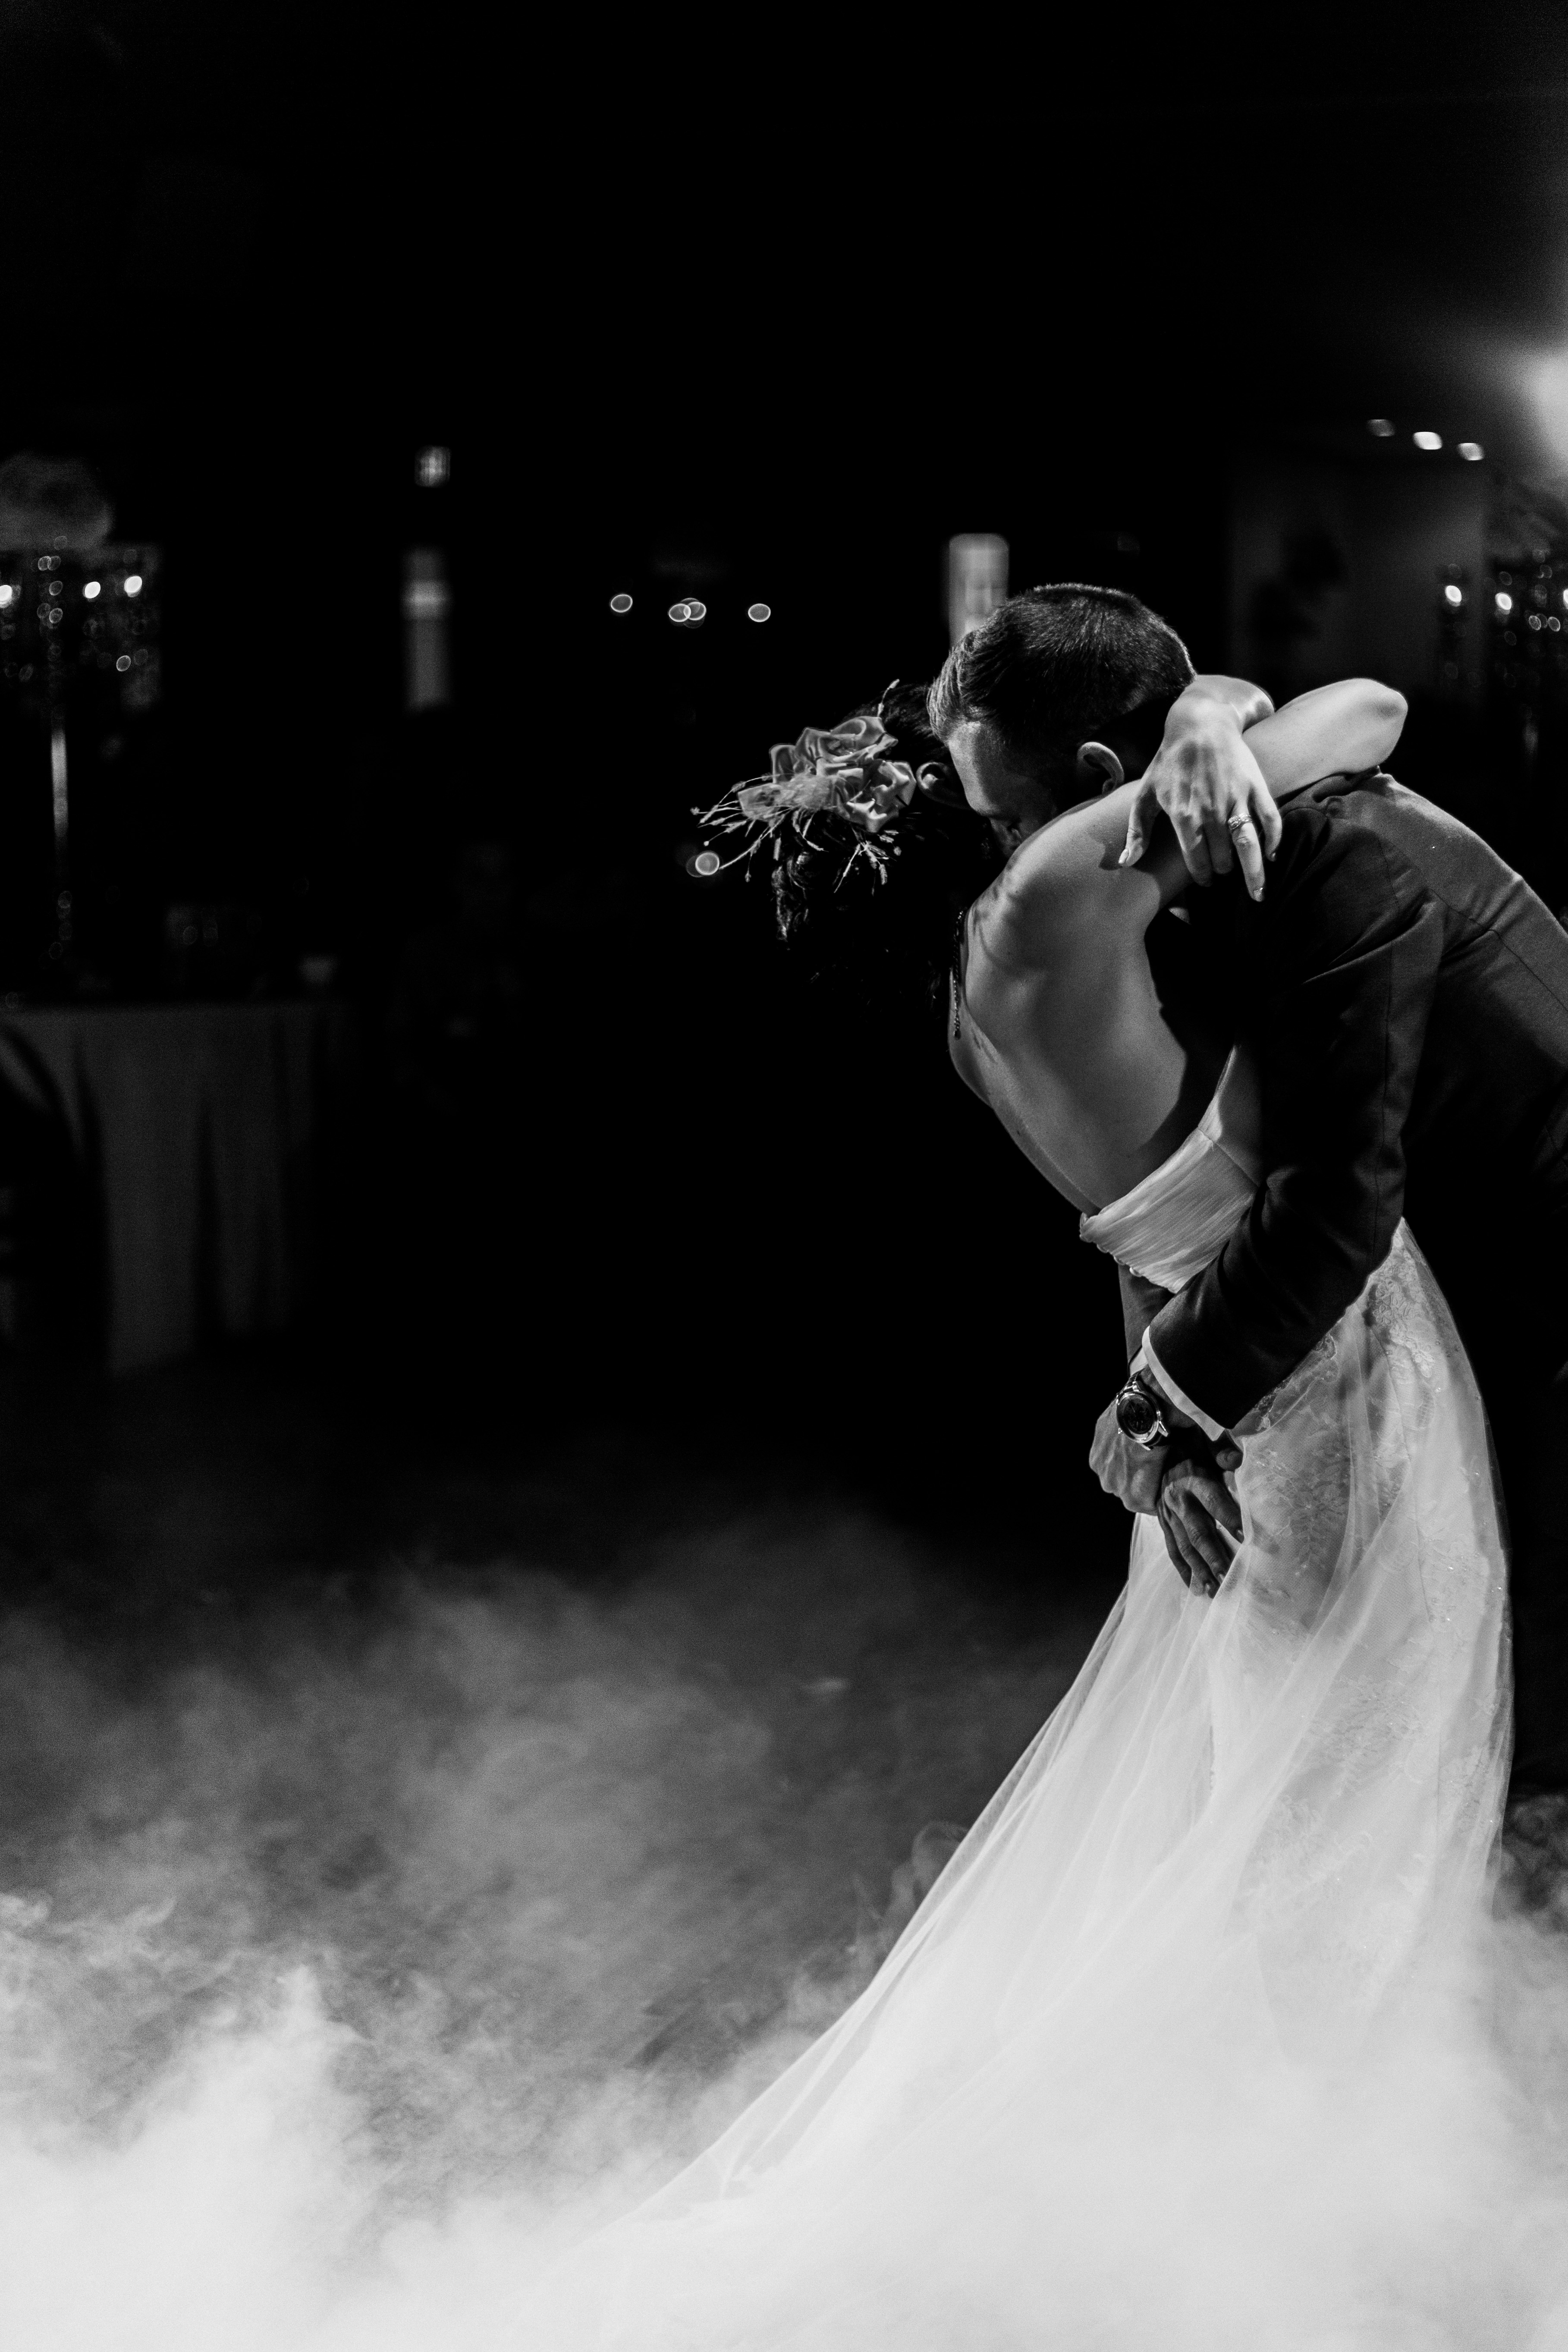 Bride and groom dancing during their first dance at the Palais Royale